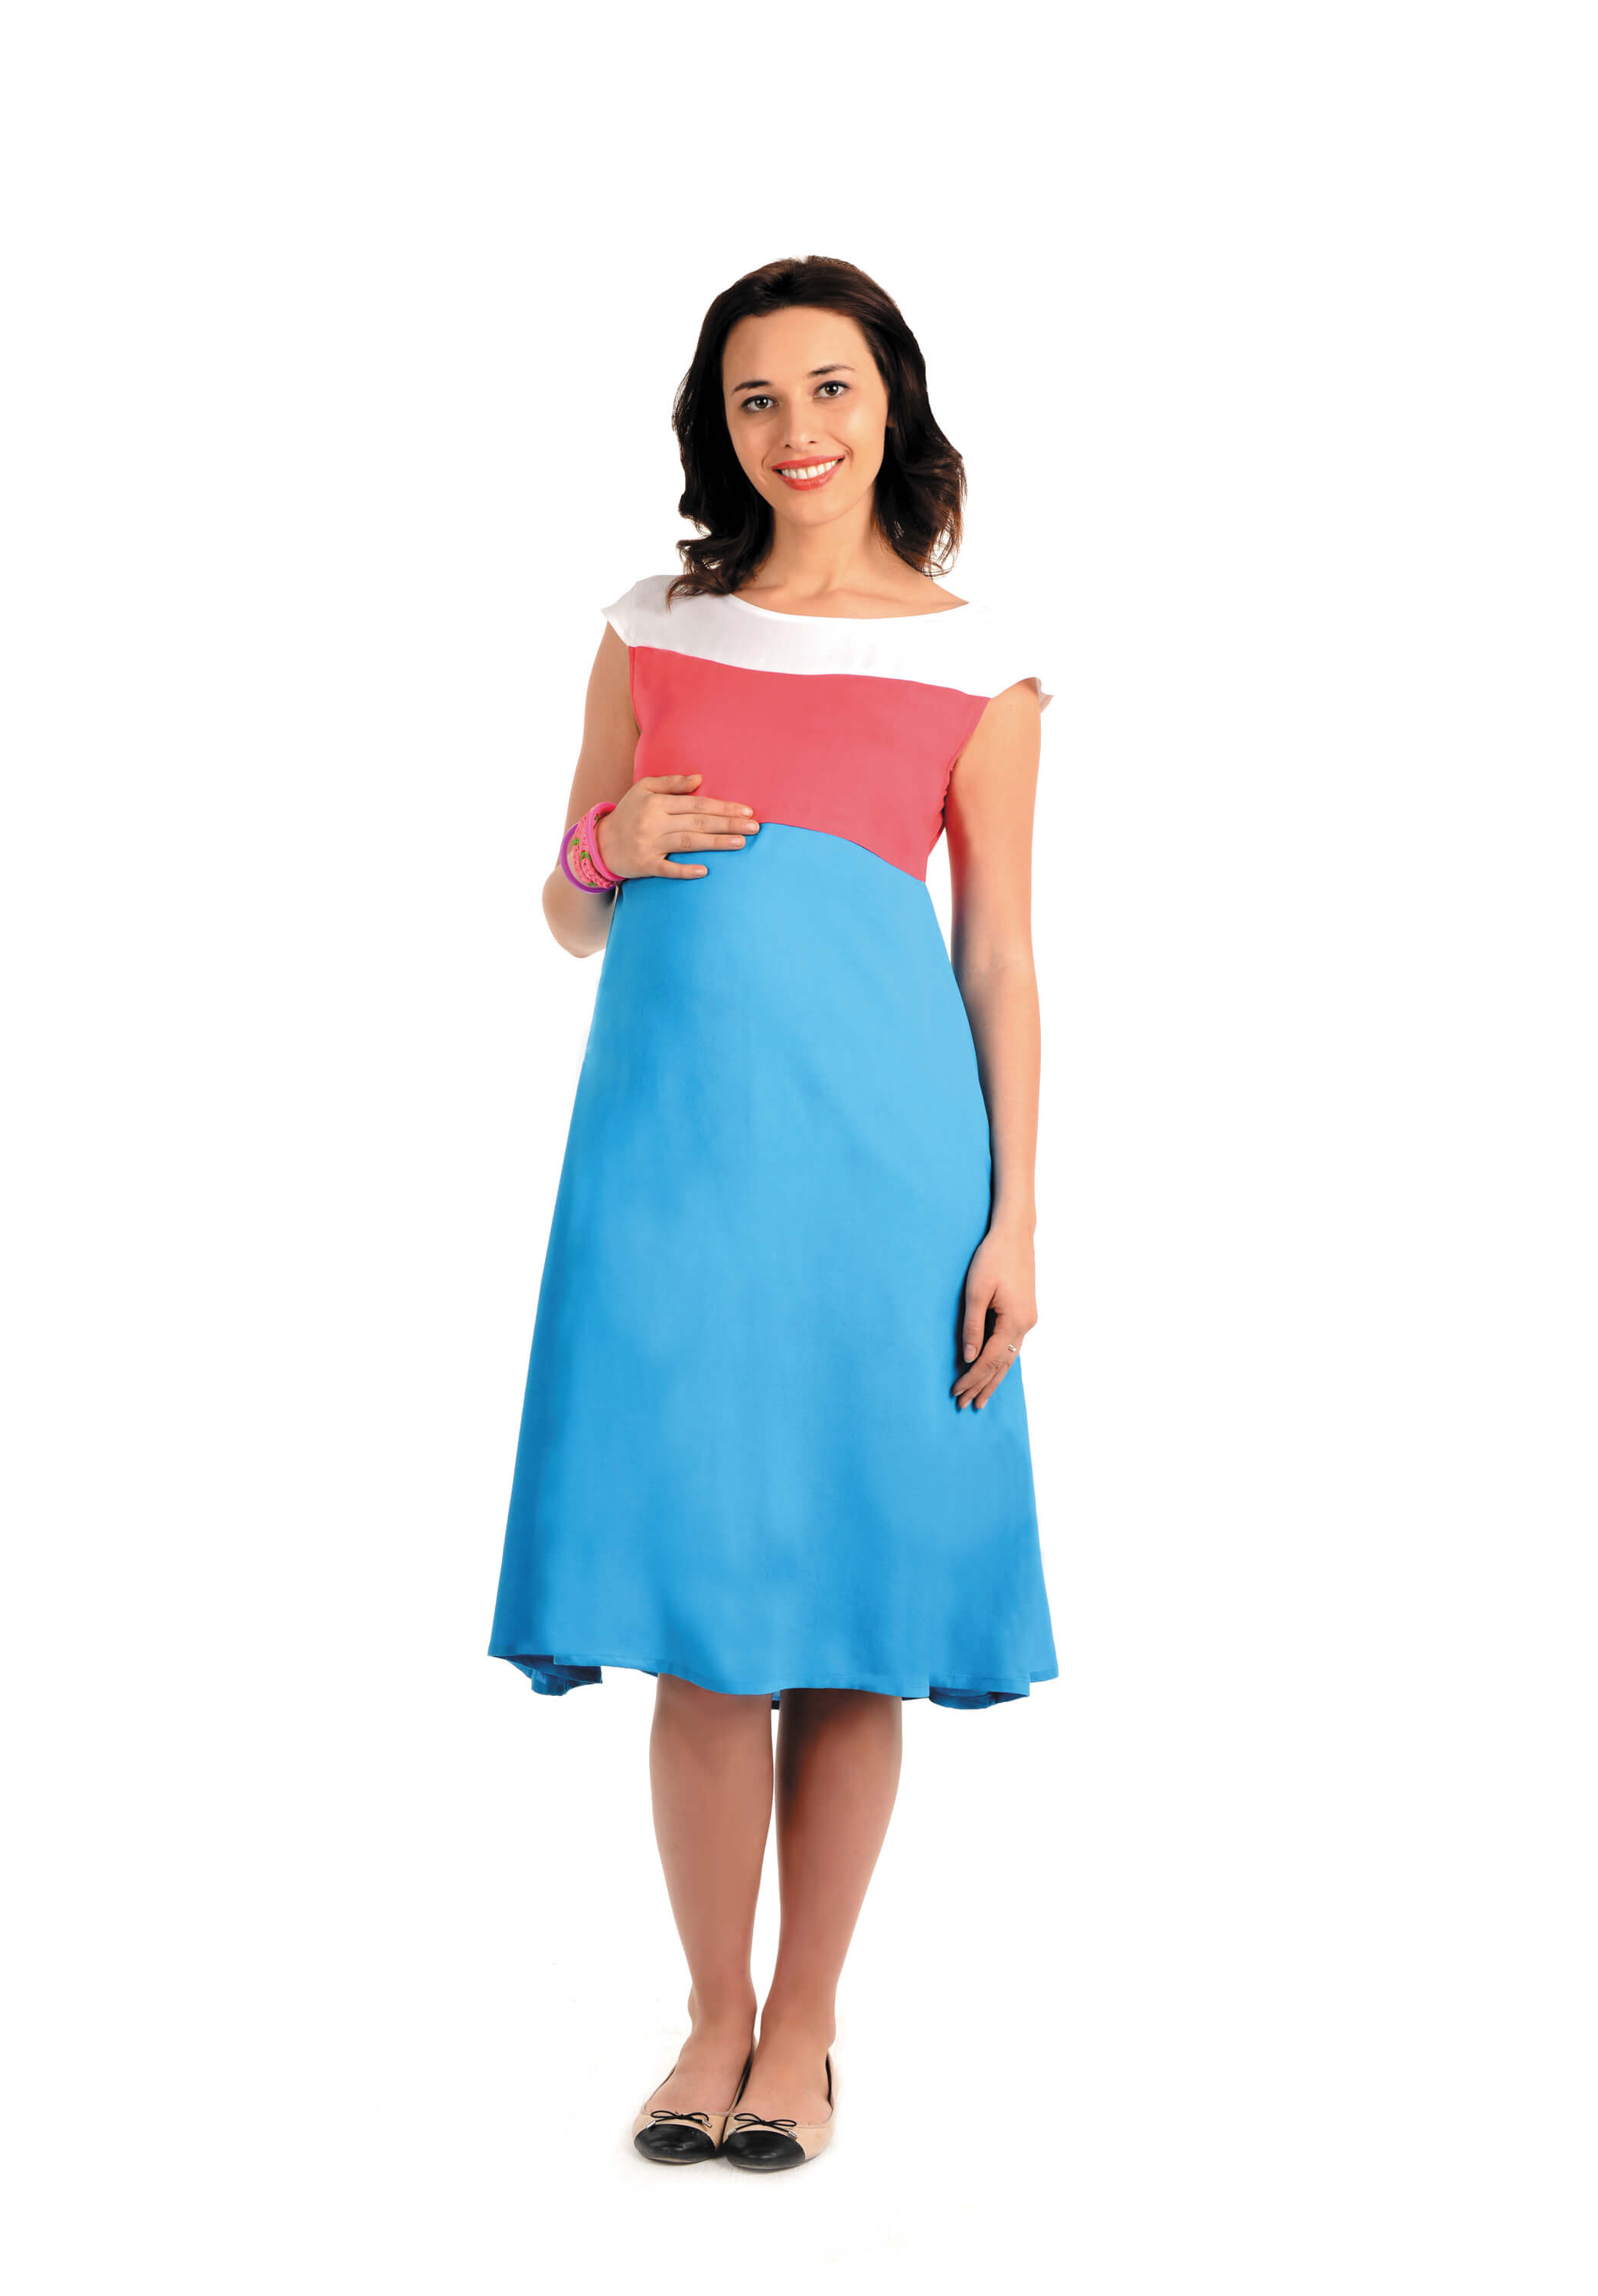 Of napius maternity casual dress pink blue house of napius maternity casual dress pink blue ombrellifo Image collections